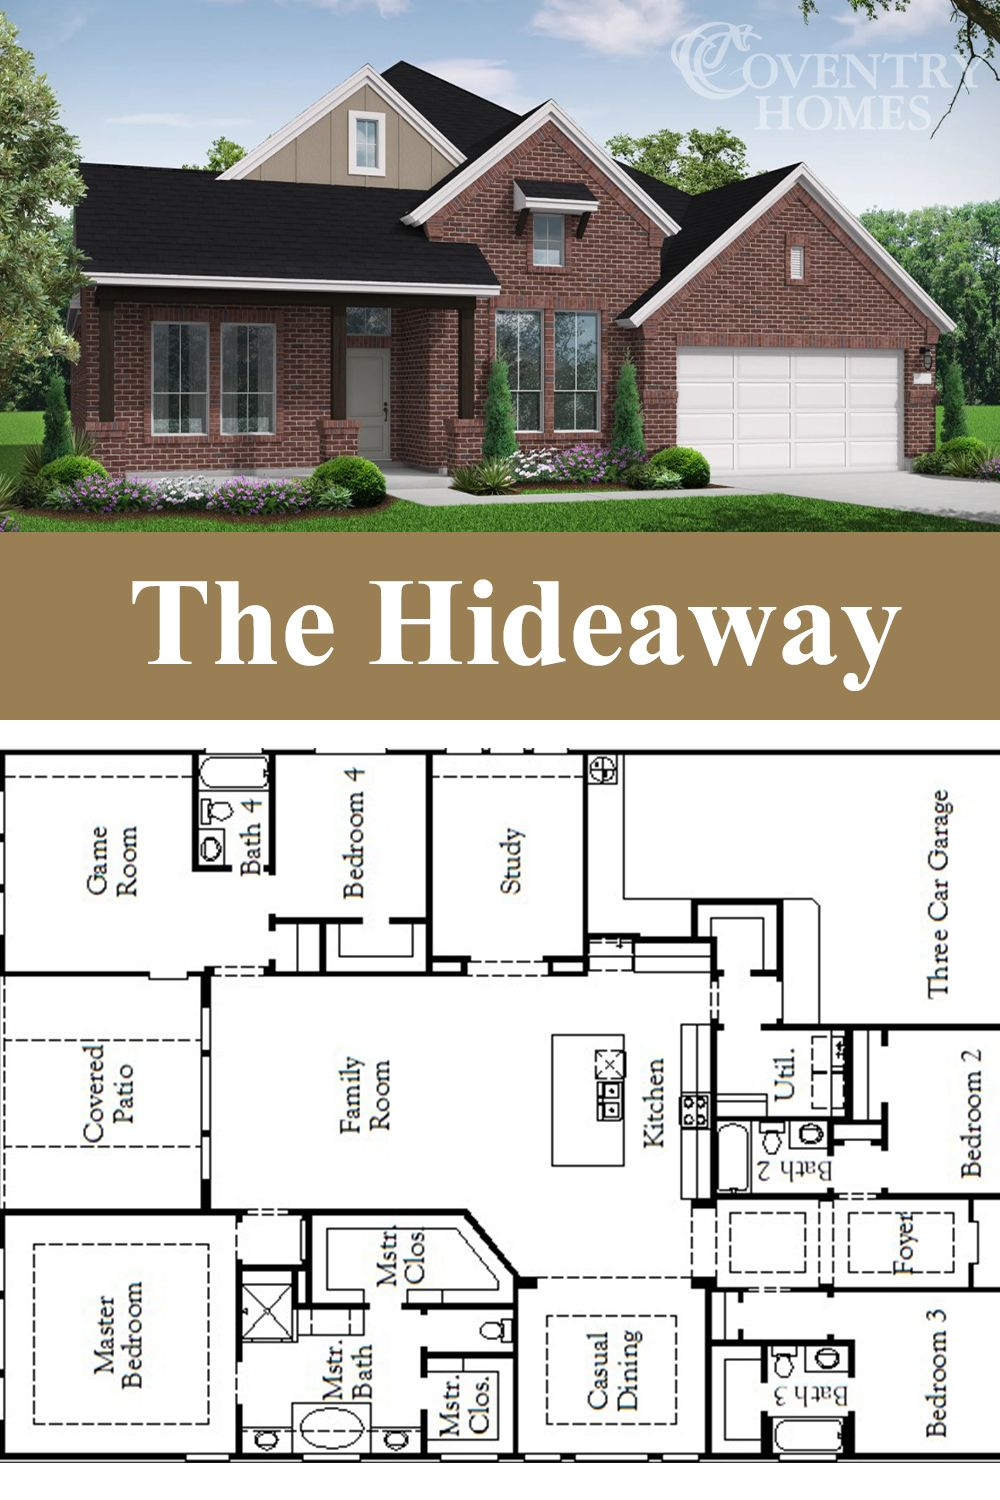 New Home Plans Floor Plan Designs Coventry Homes New House Plans Floor Plan Design